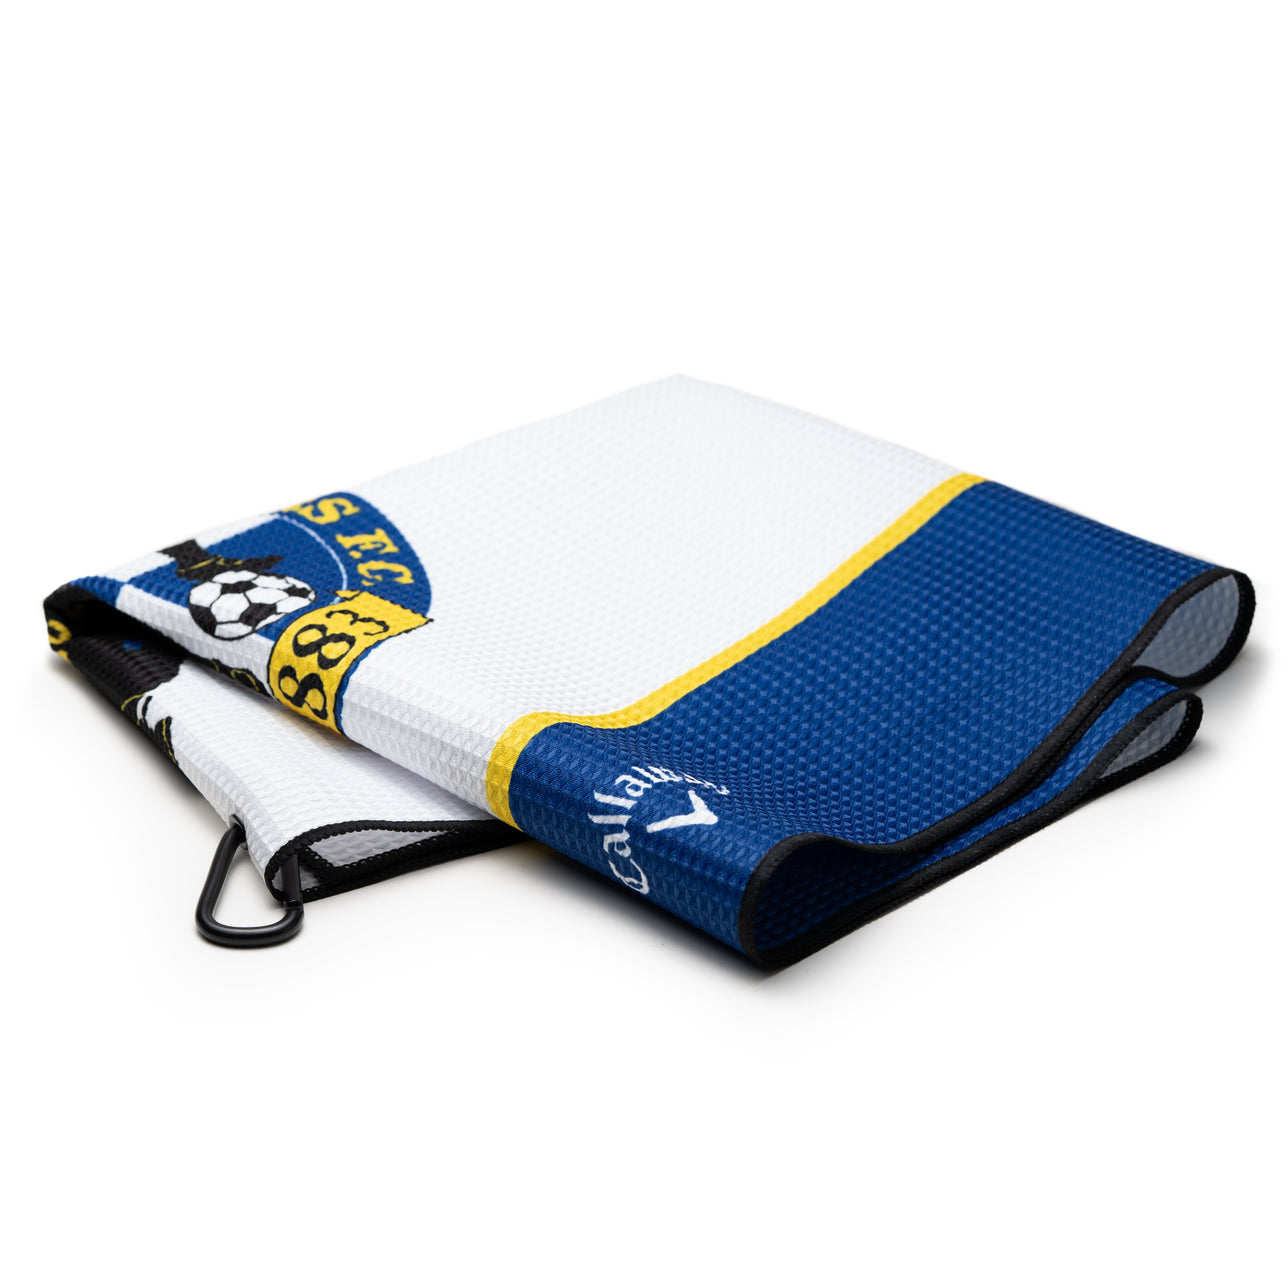 Bristol Rovers Golf Players Towel